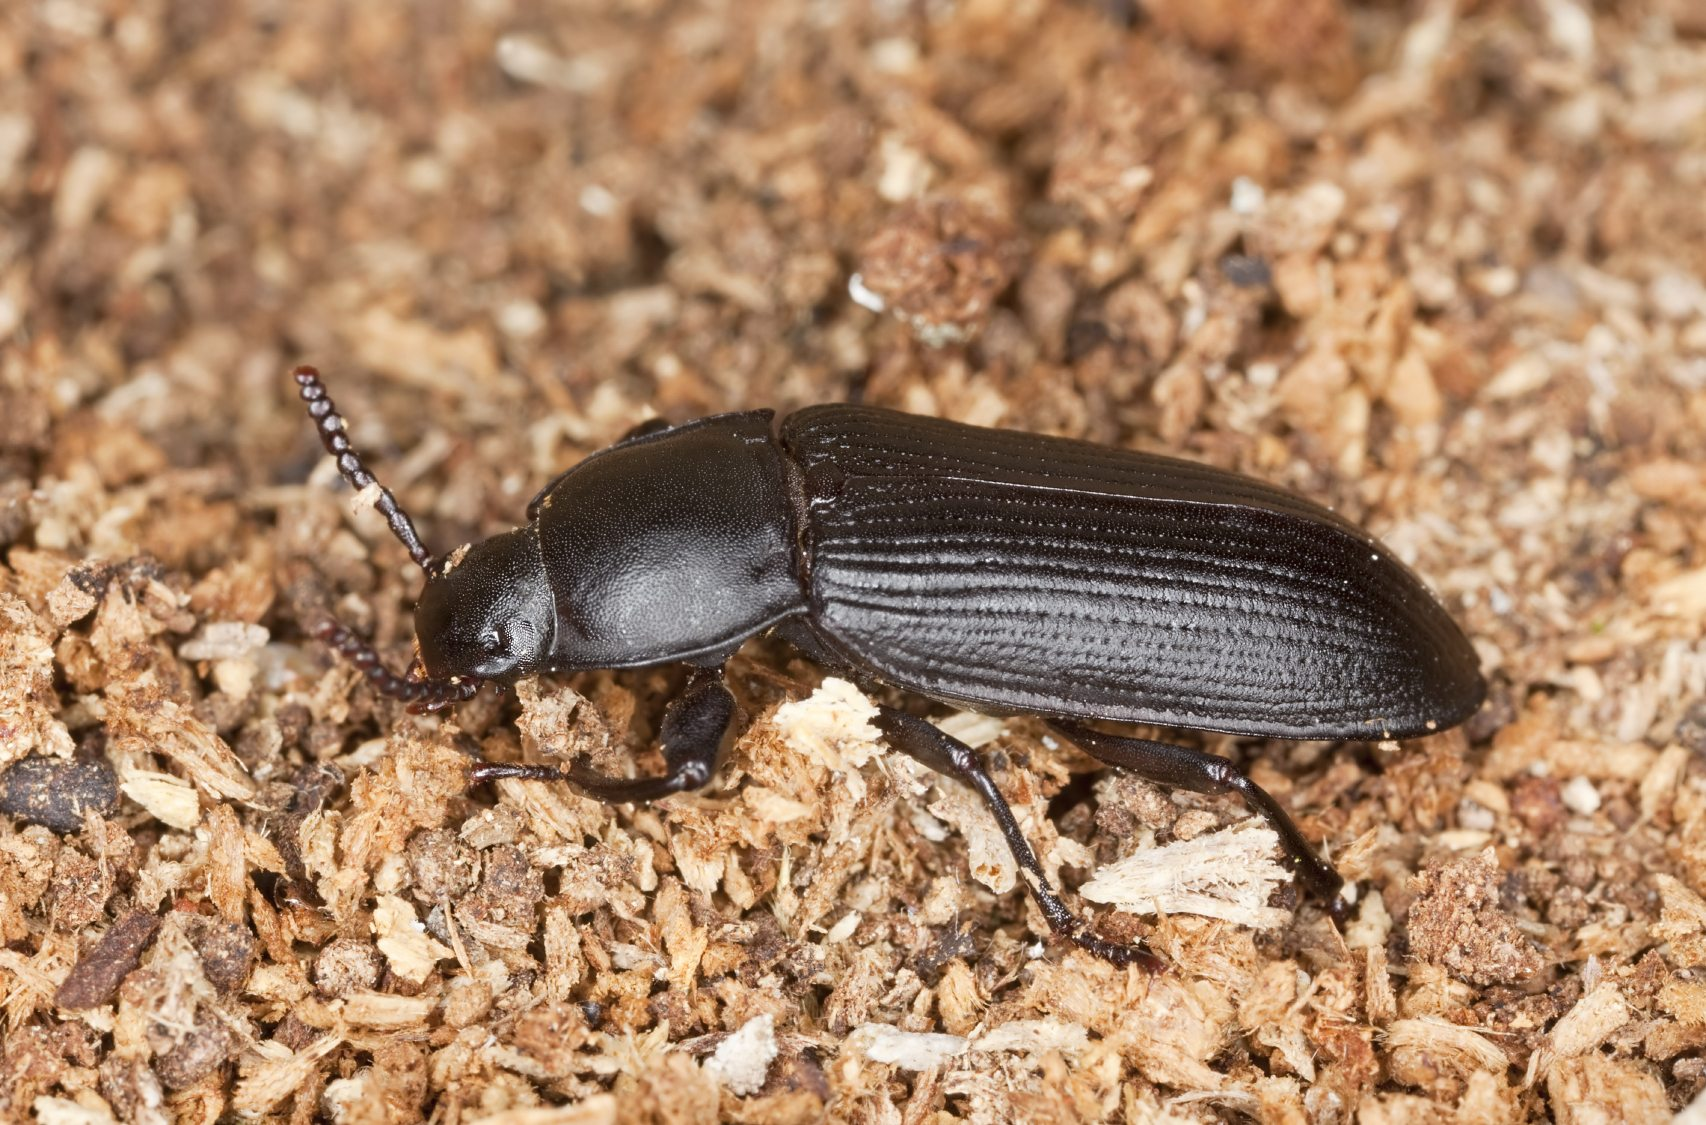 Ungeziefer Im Schlafzimmer Identification Of Darkling Beetles: Learn About Darkling